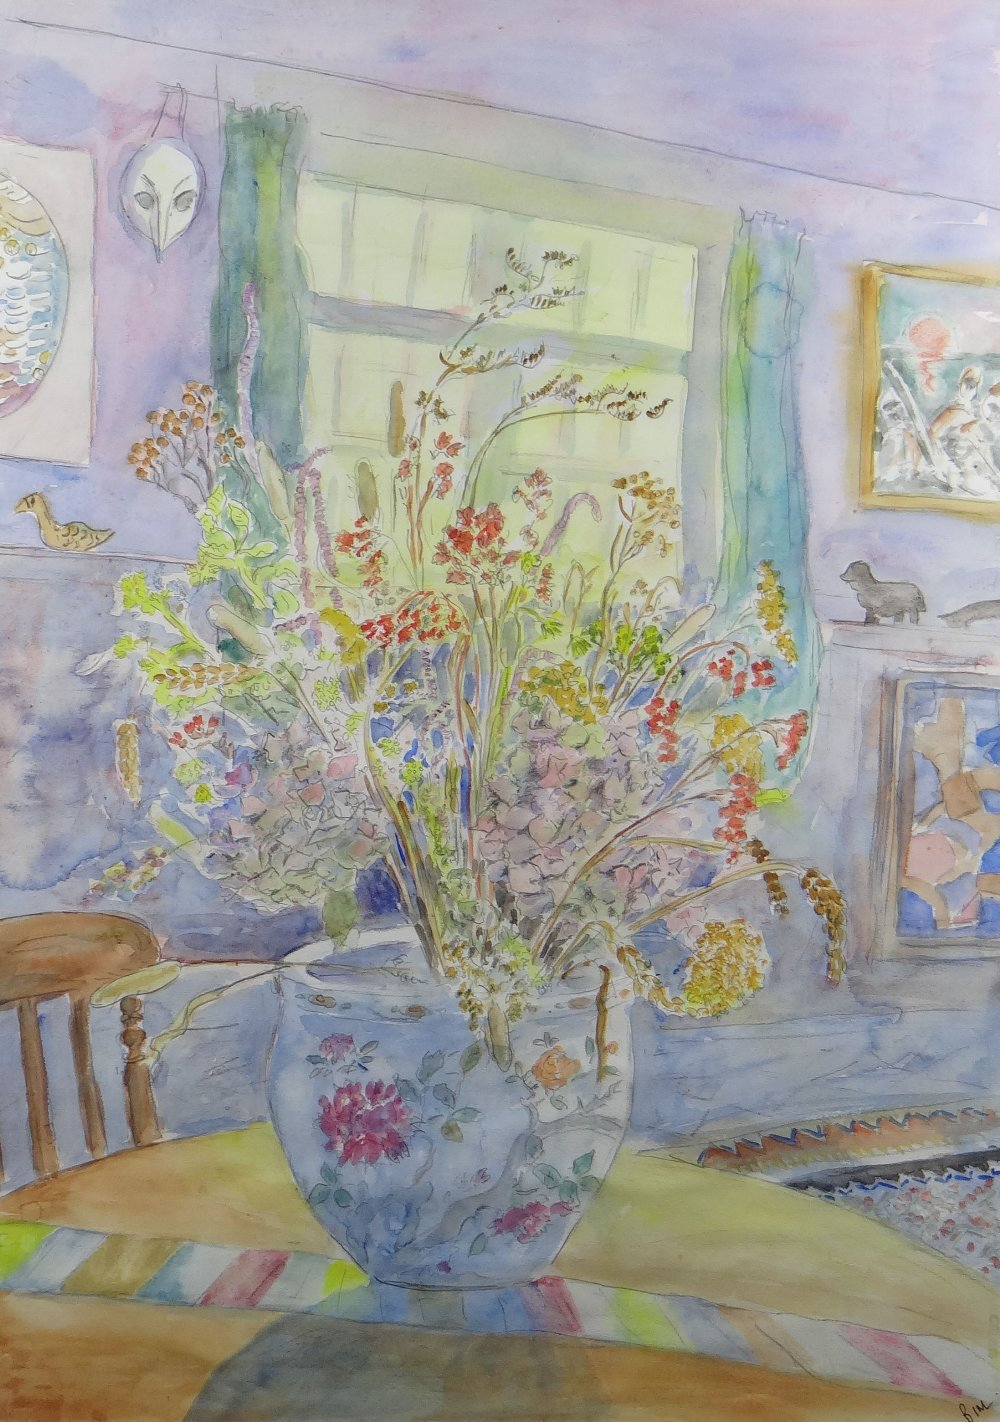 BIM GIARDELLI watercolour - interior scene with jardiniere of flowers on a table, signed, 69 x 48cms